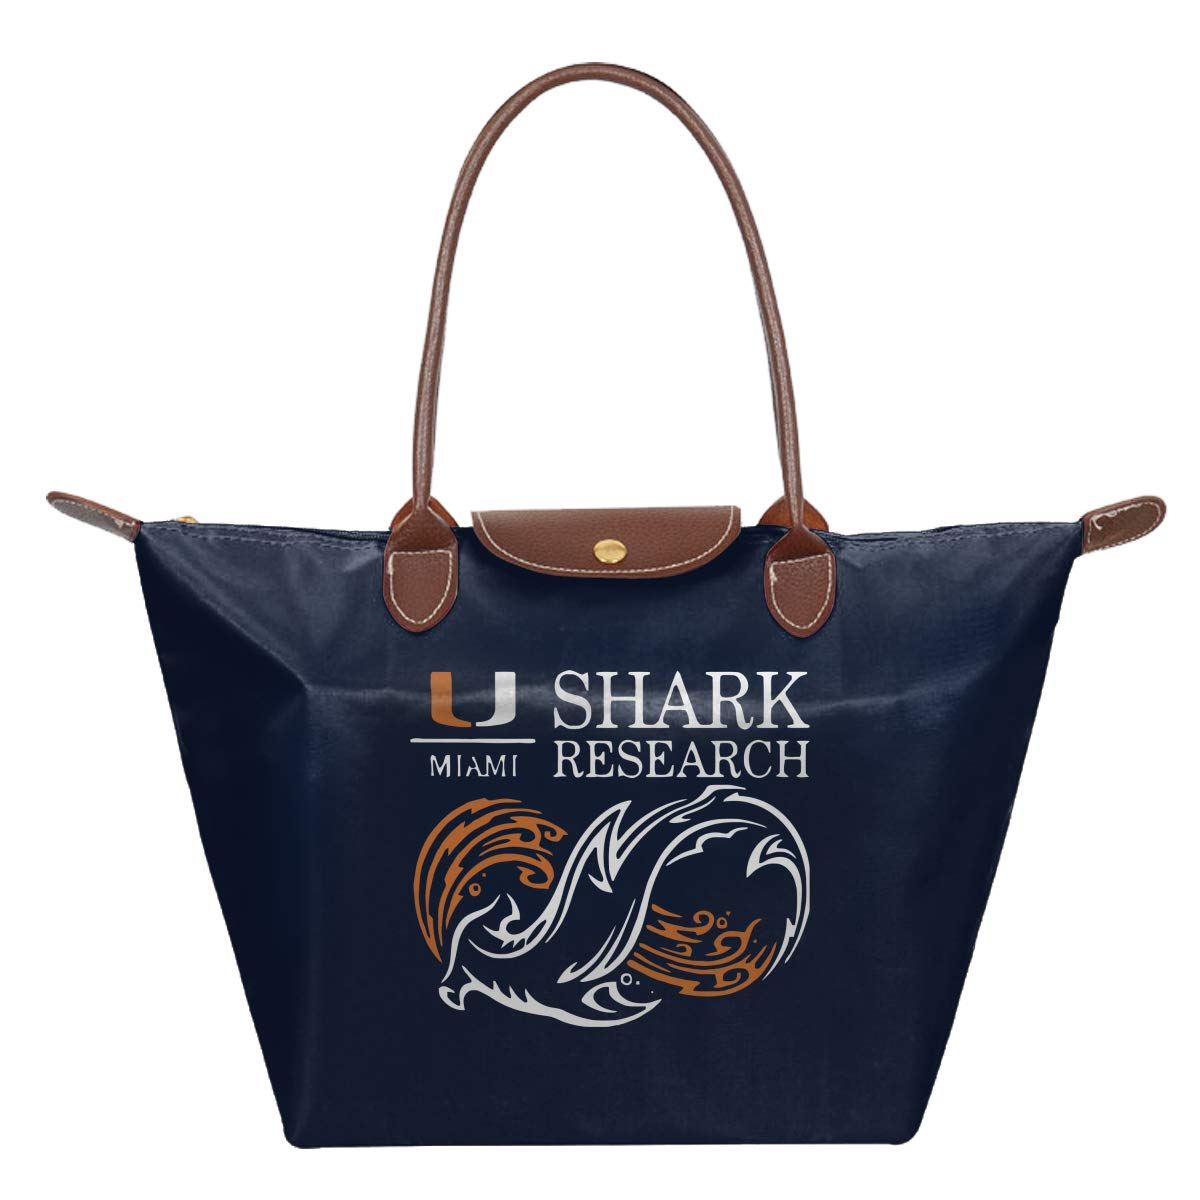 University Of Miami Shark Research Waterproof Leather Folded Messenger Nylon Bag Travel Tote Hopping Folding School Handbags